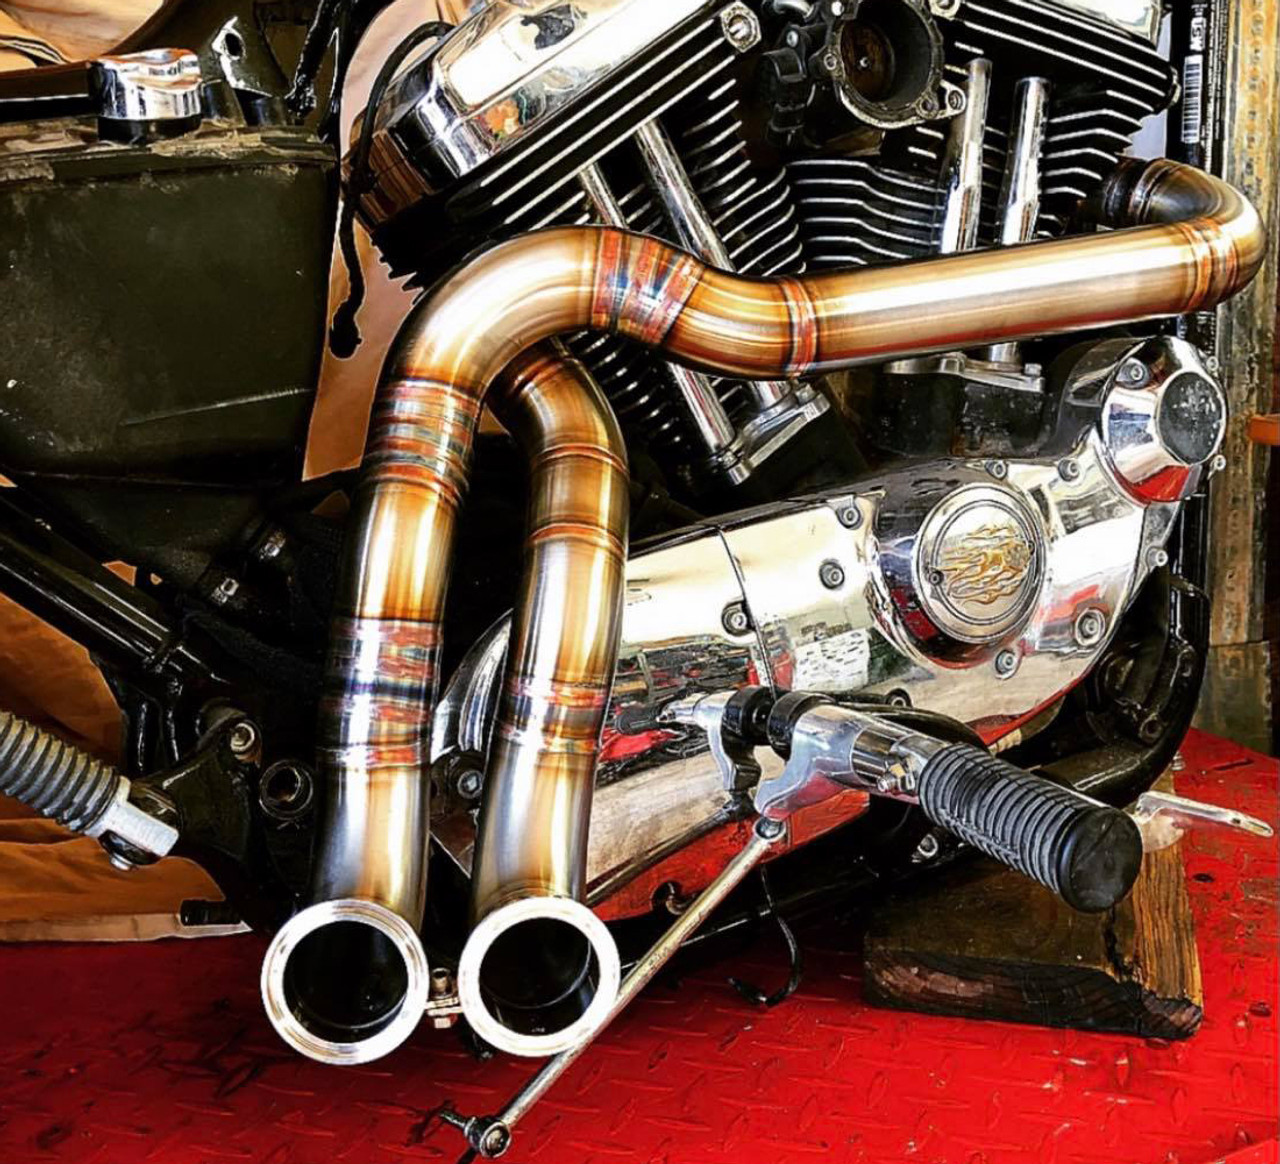 graffeo twisted dual flat tips stainless steel original exhaust system for harley